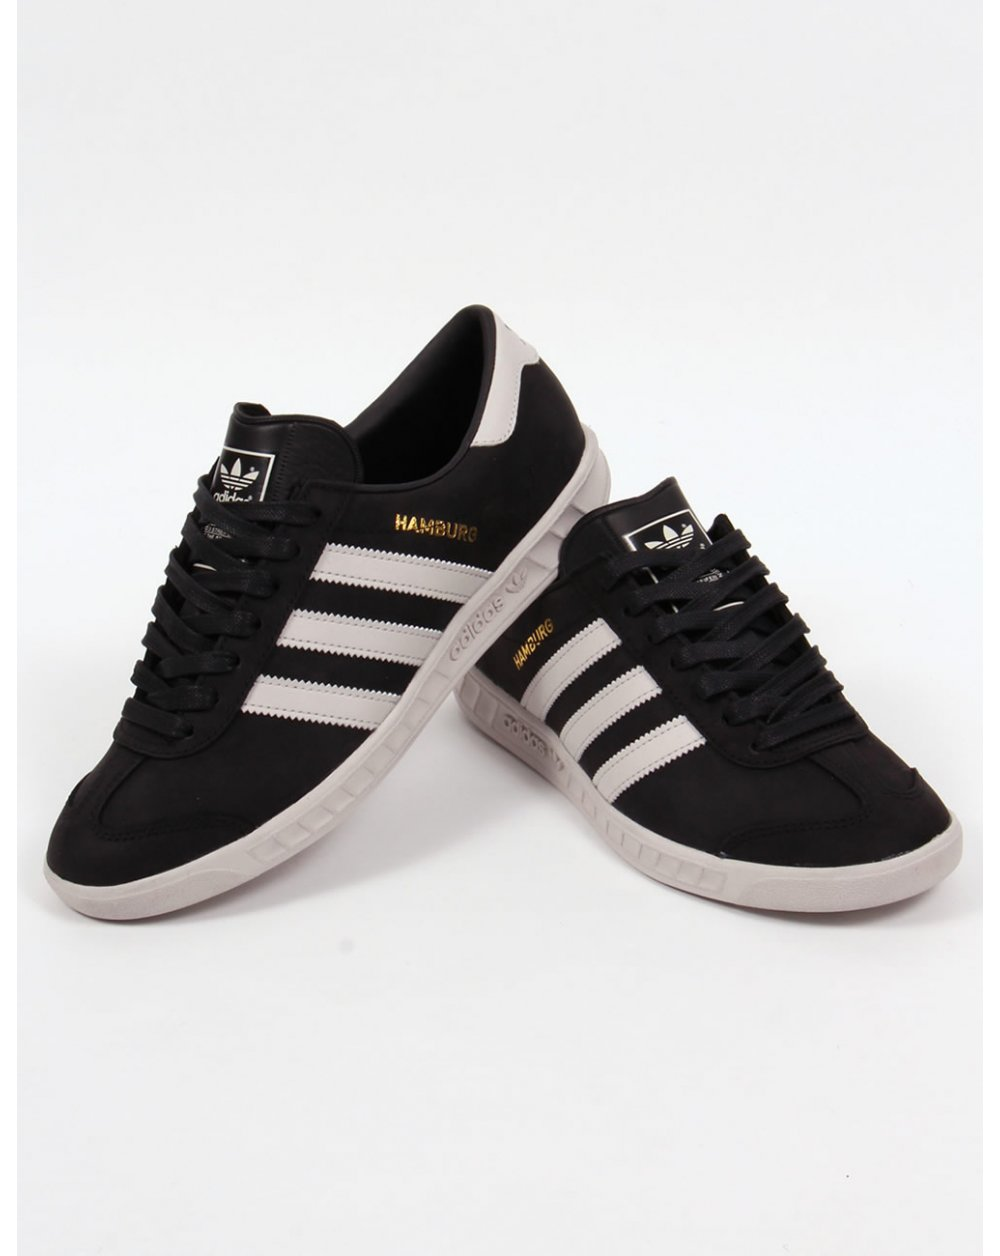 Mens Black Kickers Shoes